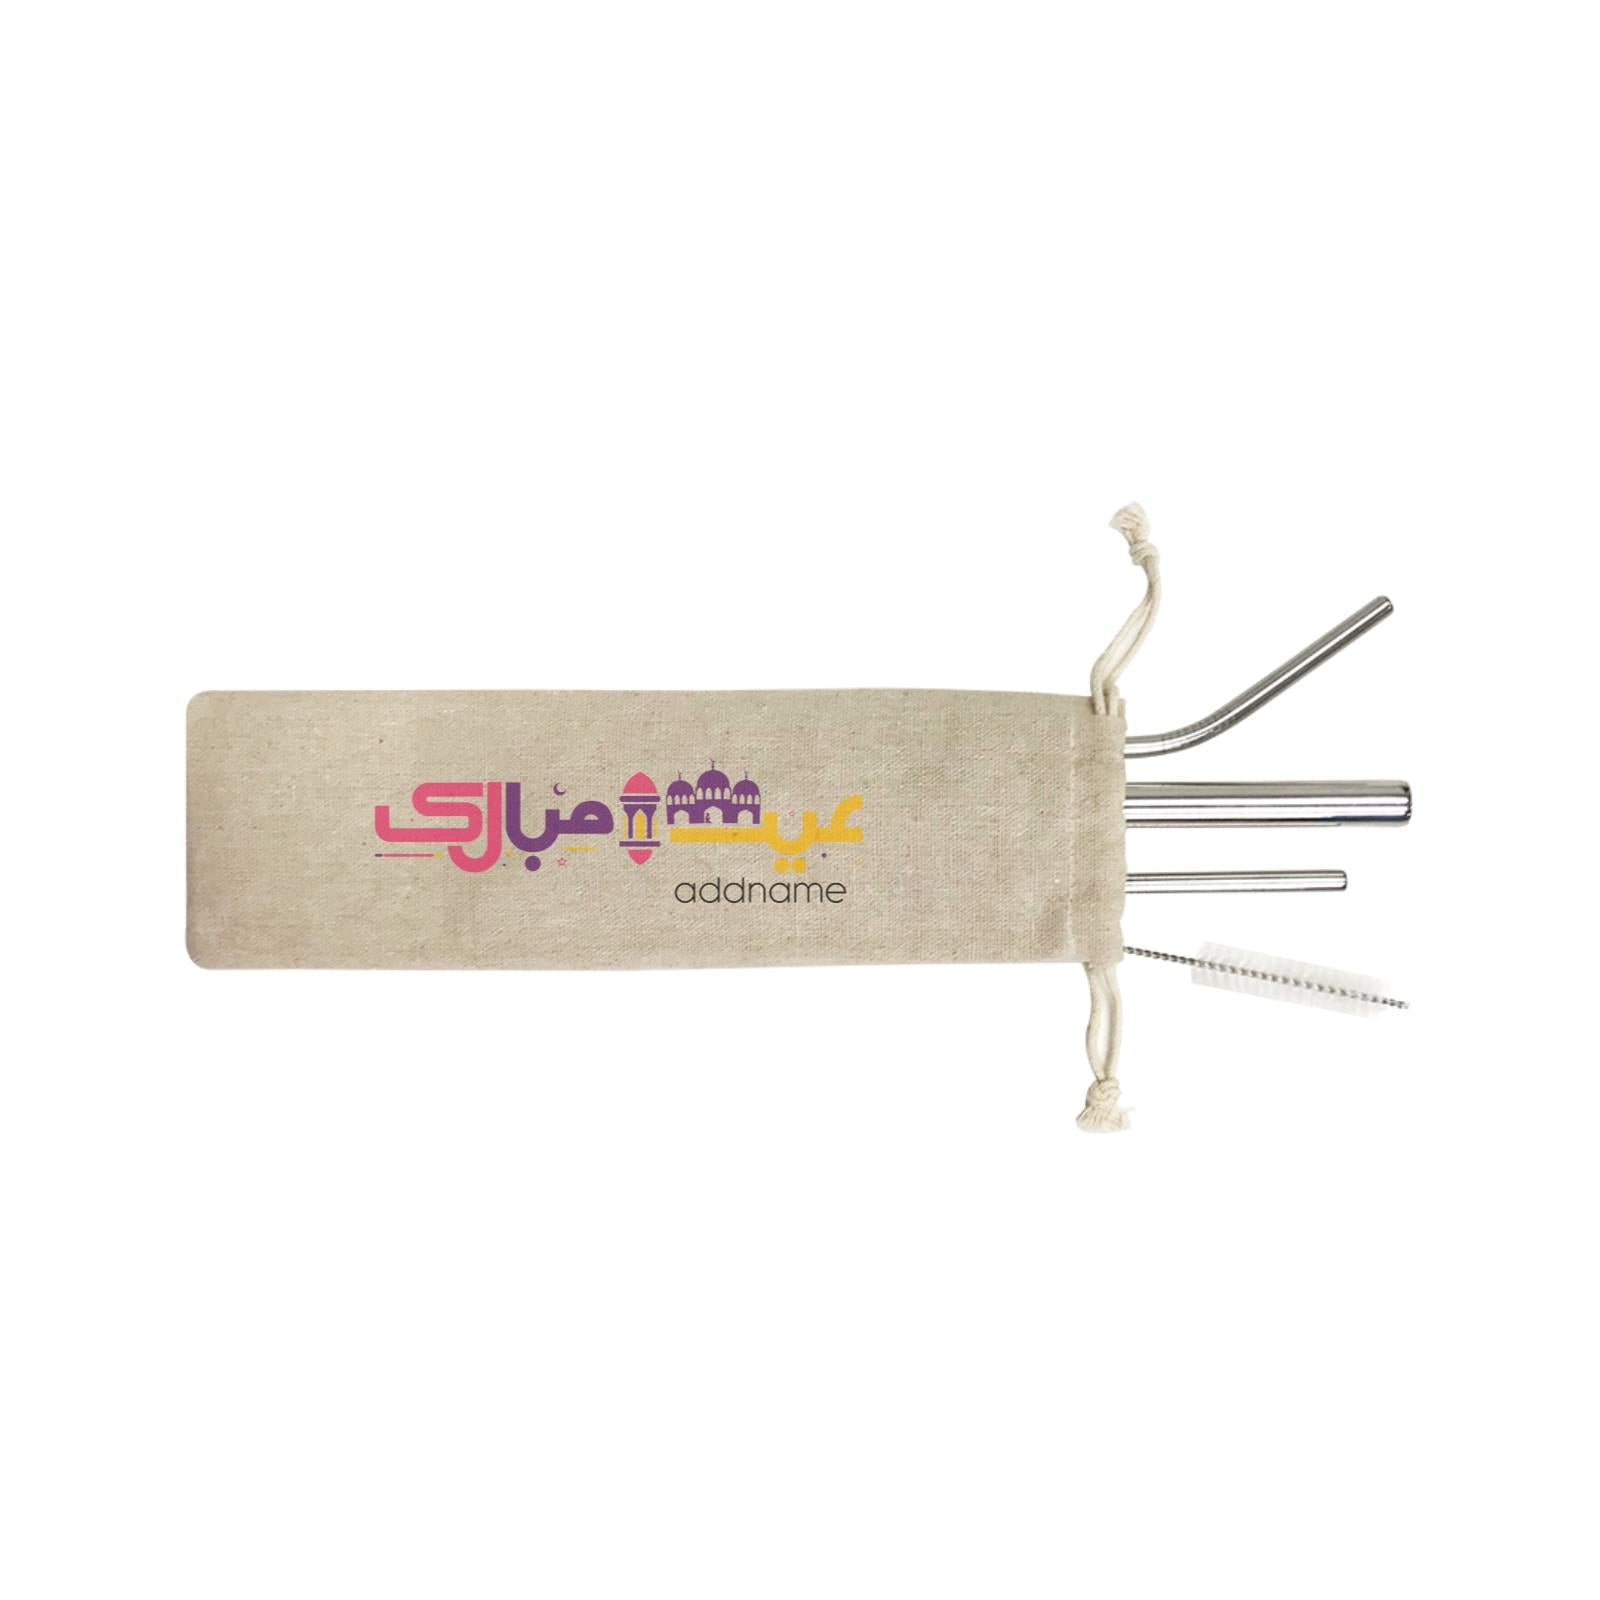 Raya Eid Mubarak Calligraphy Addname SB 4-In-1 Stainless Steel Straw Set in Satchel